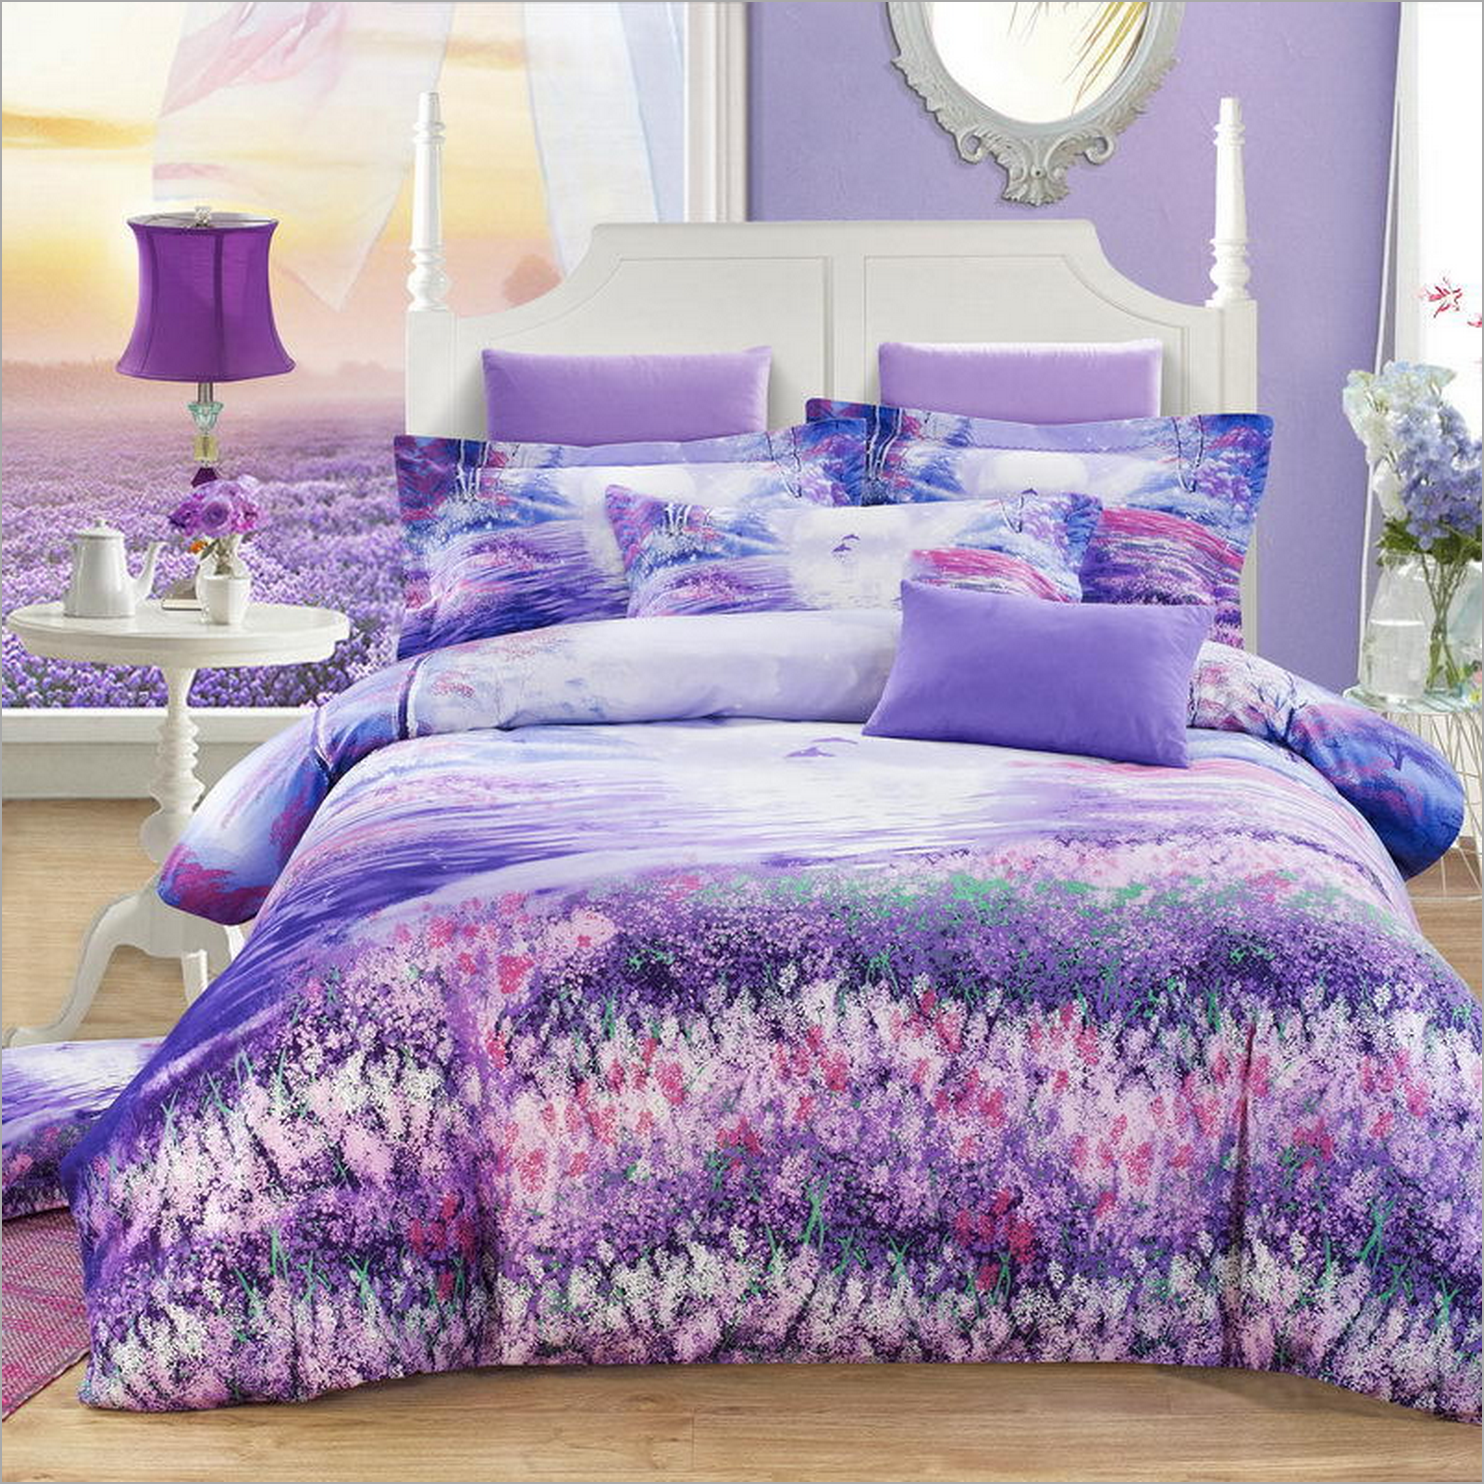 Best Newly Wed Or Not This Eye Catching Bedding Set Will Light 400 x 300